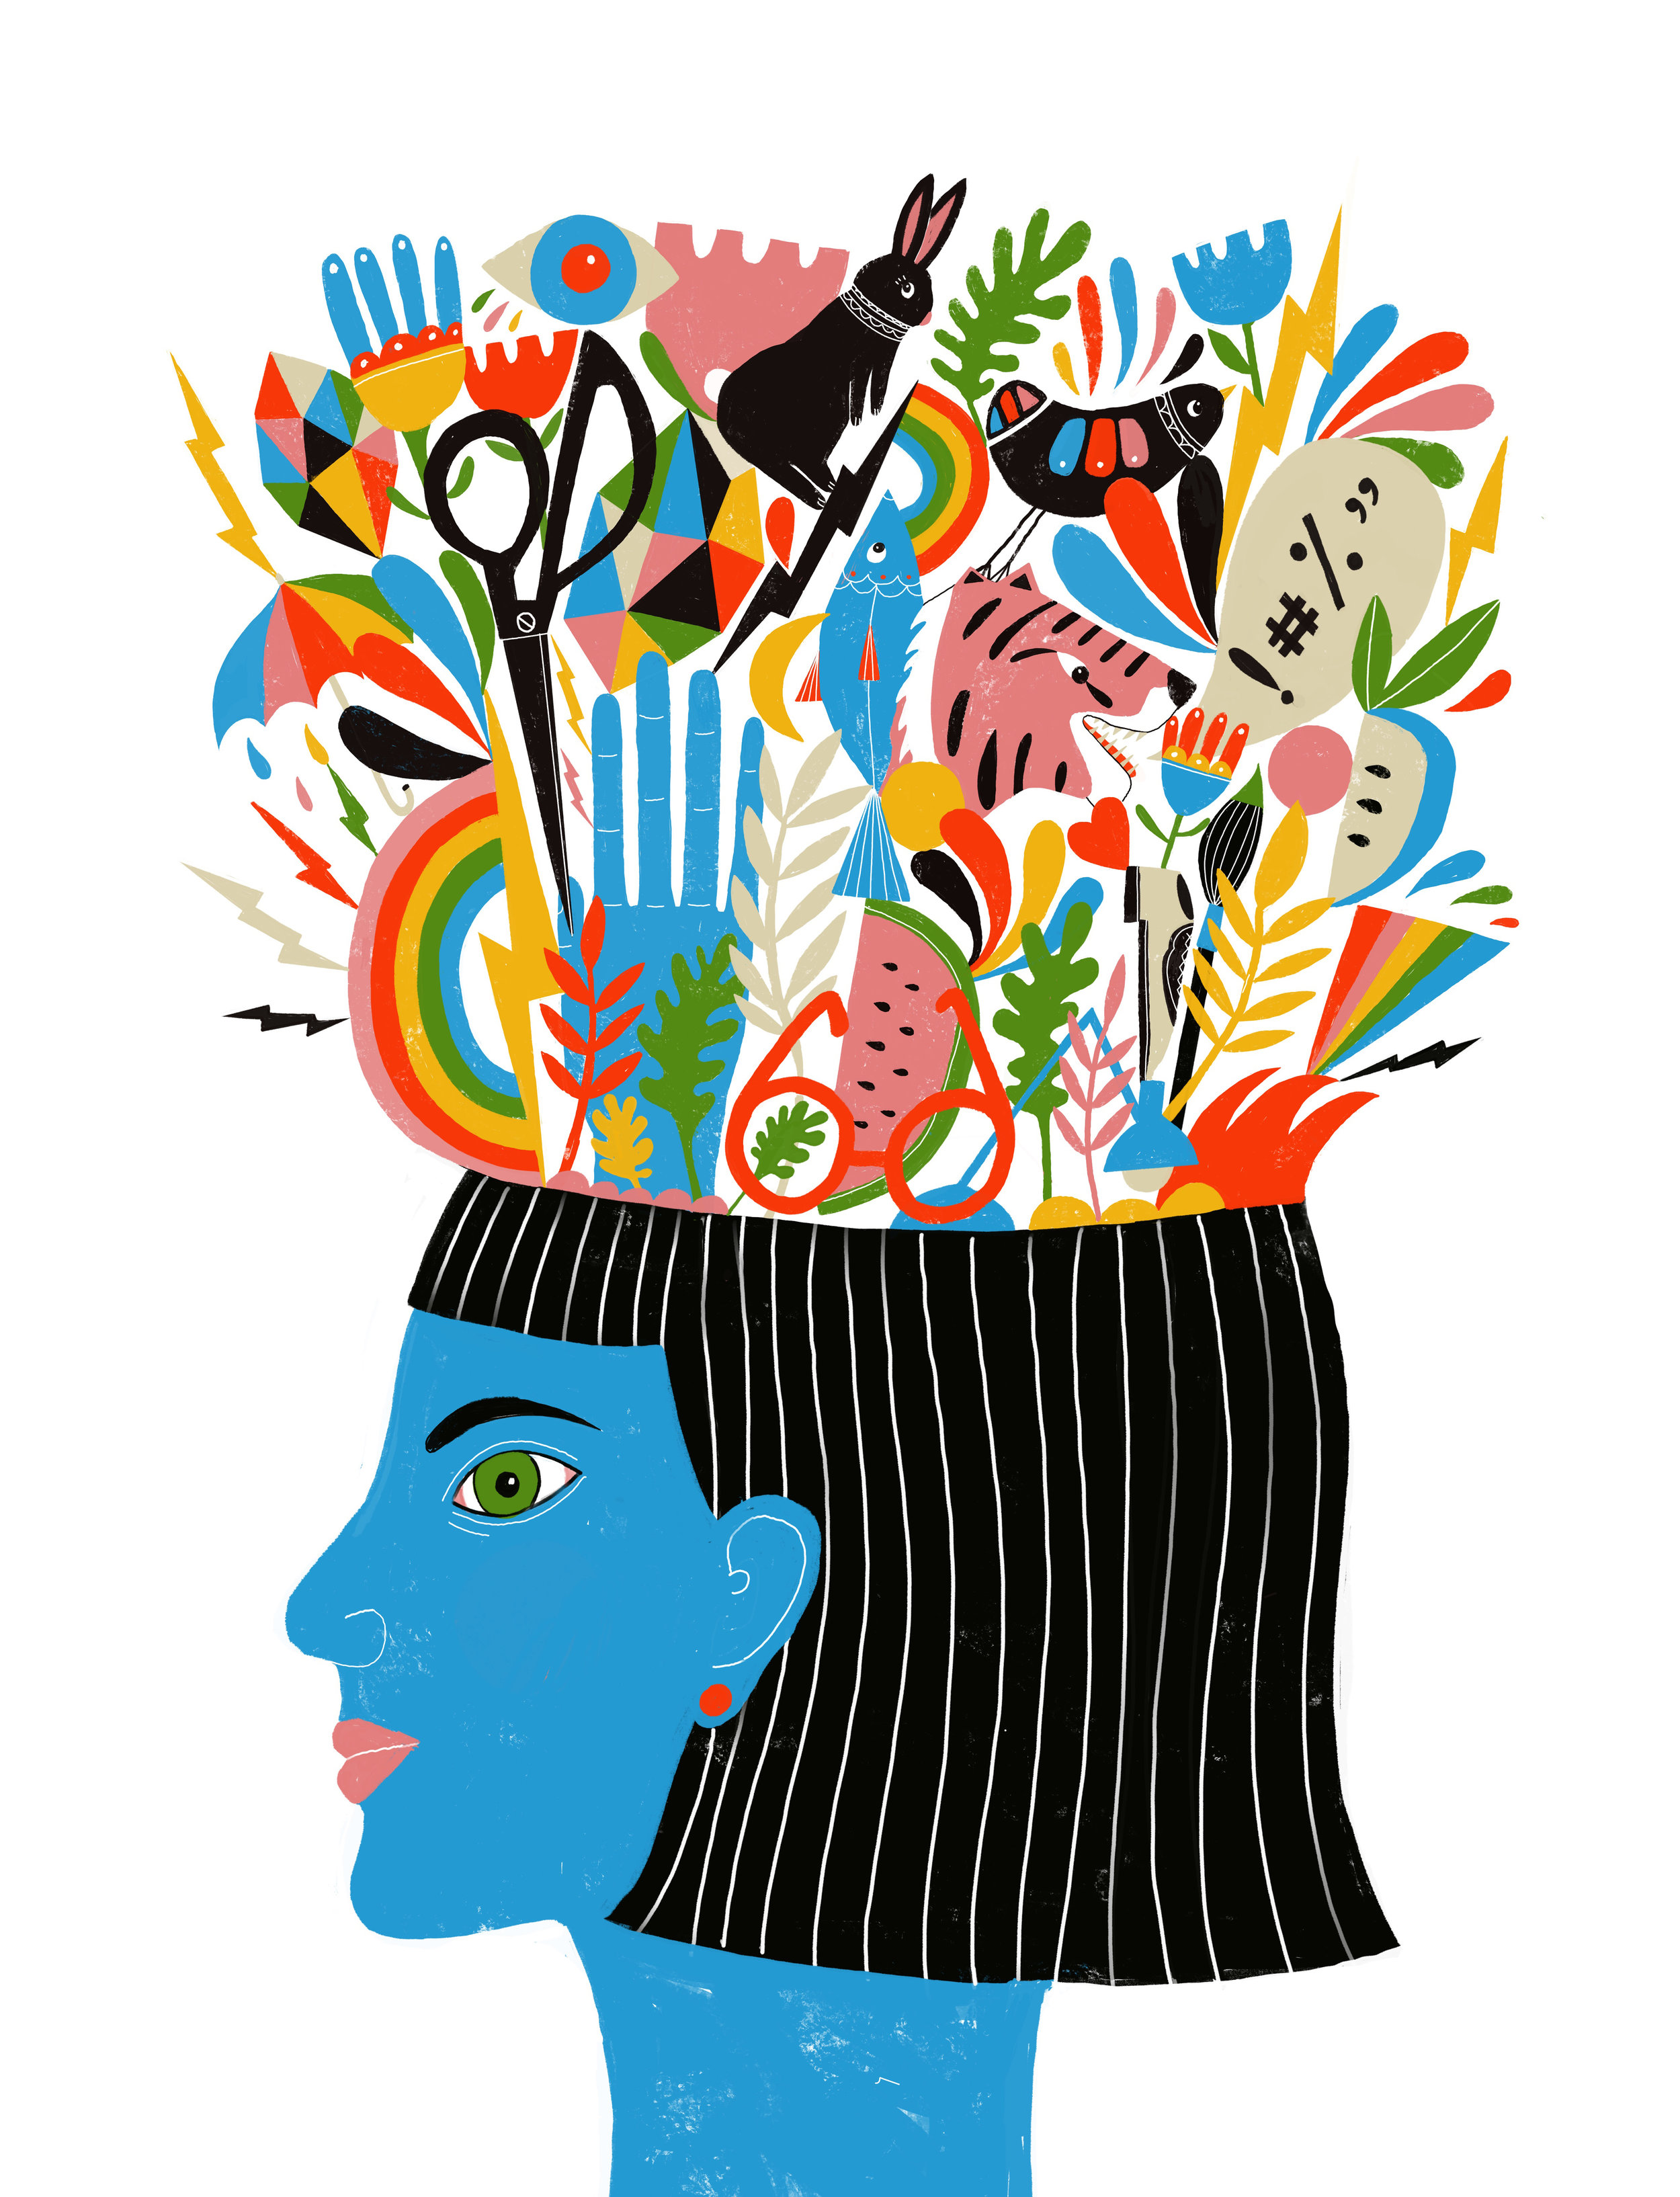 Find Your Artistic Voice_Lisa Congdon_What is an Artistic Voice.jpg